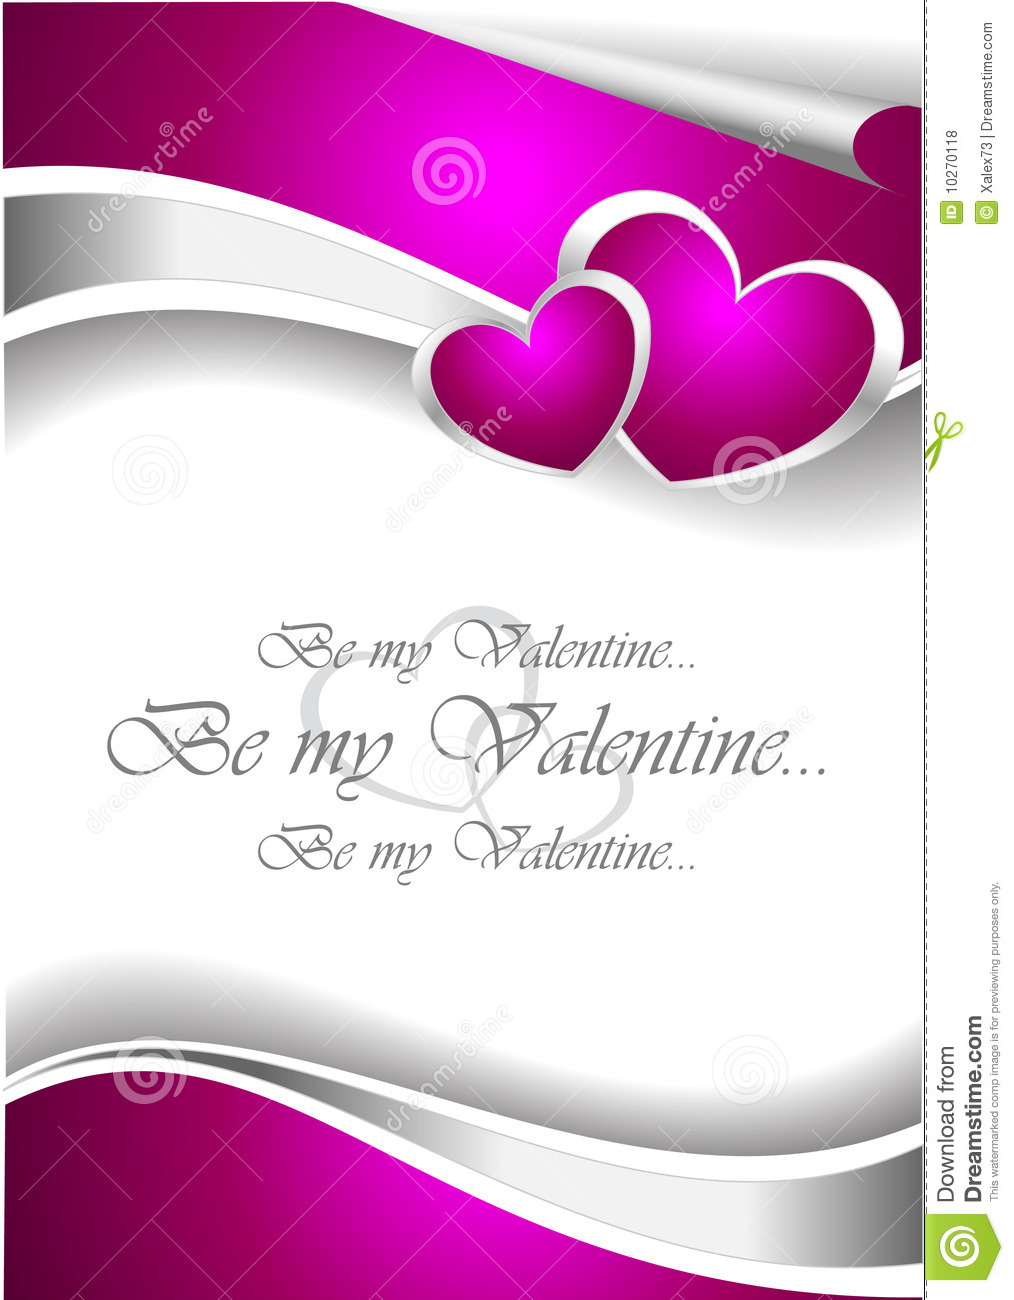 Valentine invitation card stock vector illustration of greeting valentine invitation card stopboris Image collections